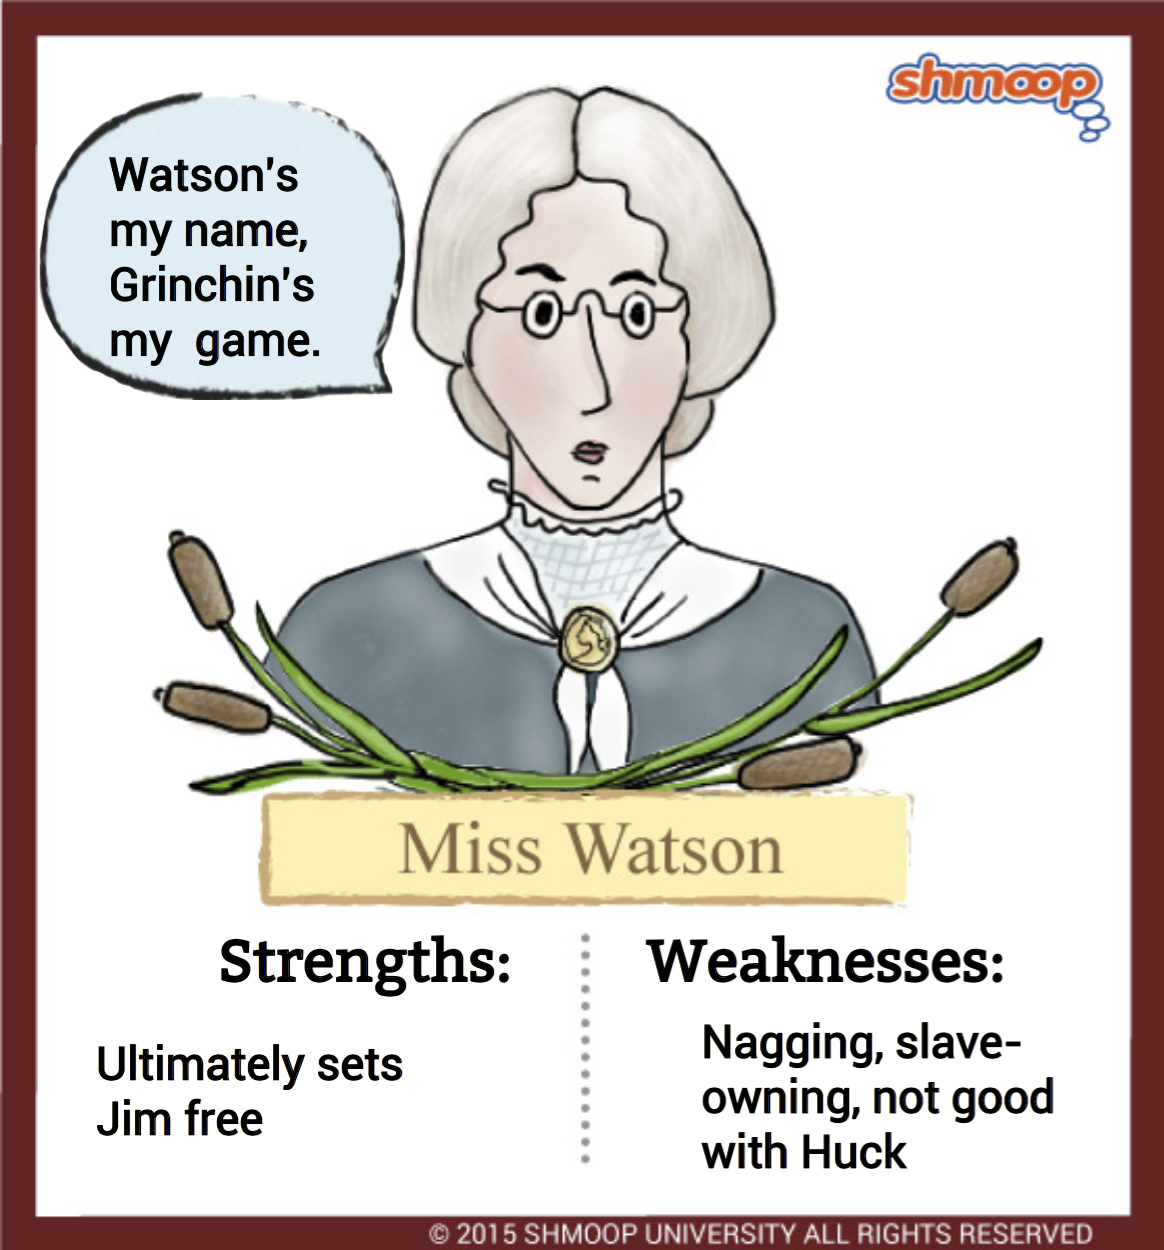 miss watson in adventures of huckleberry finn click the character infographic to